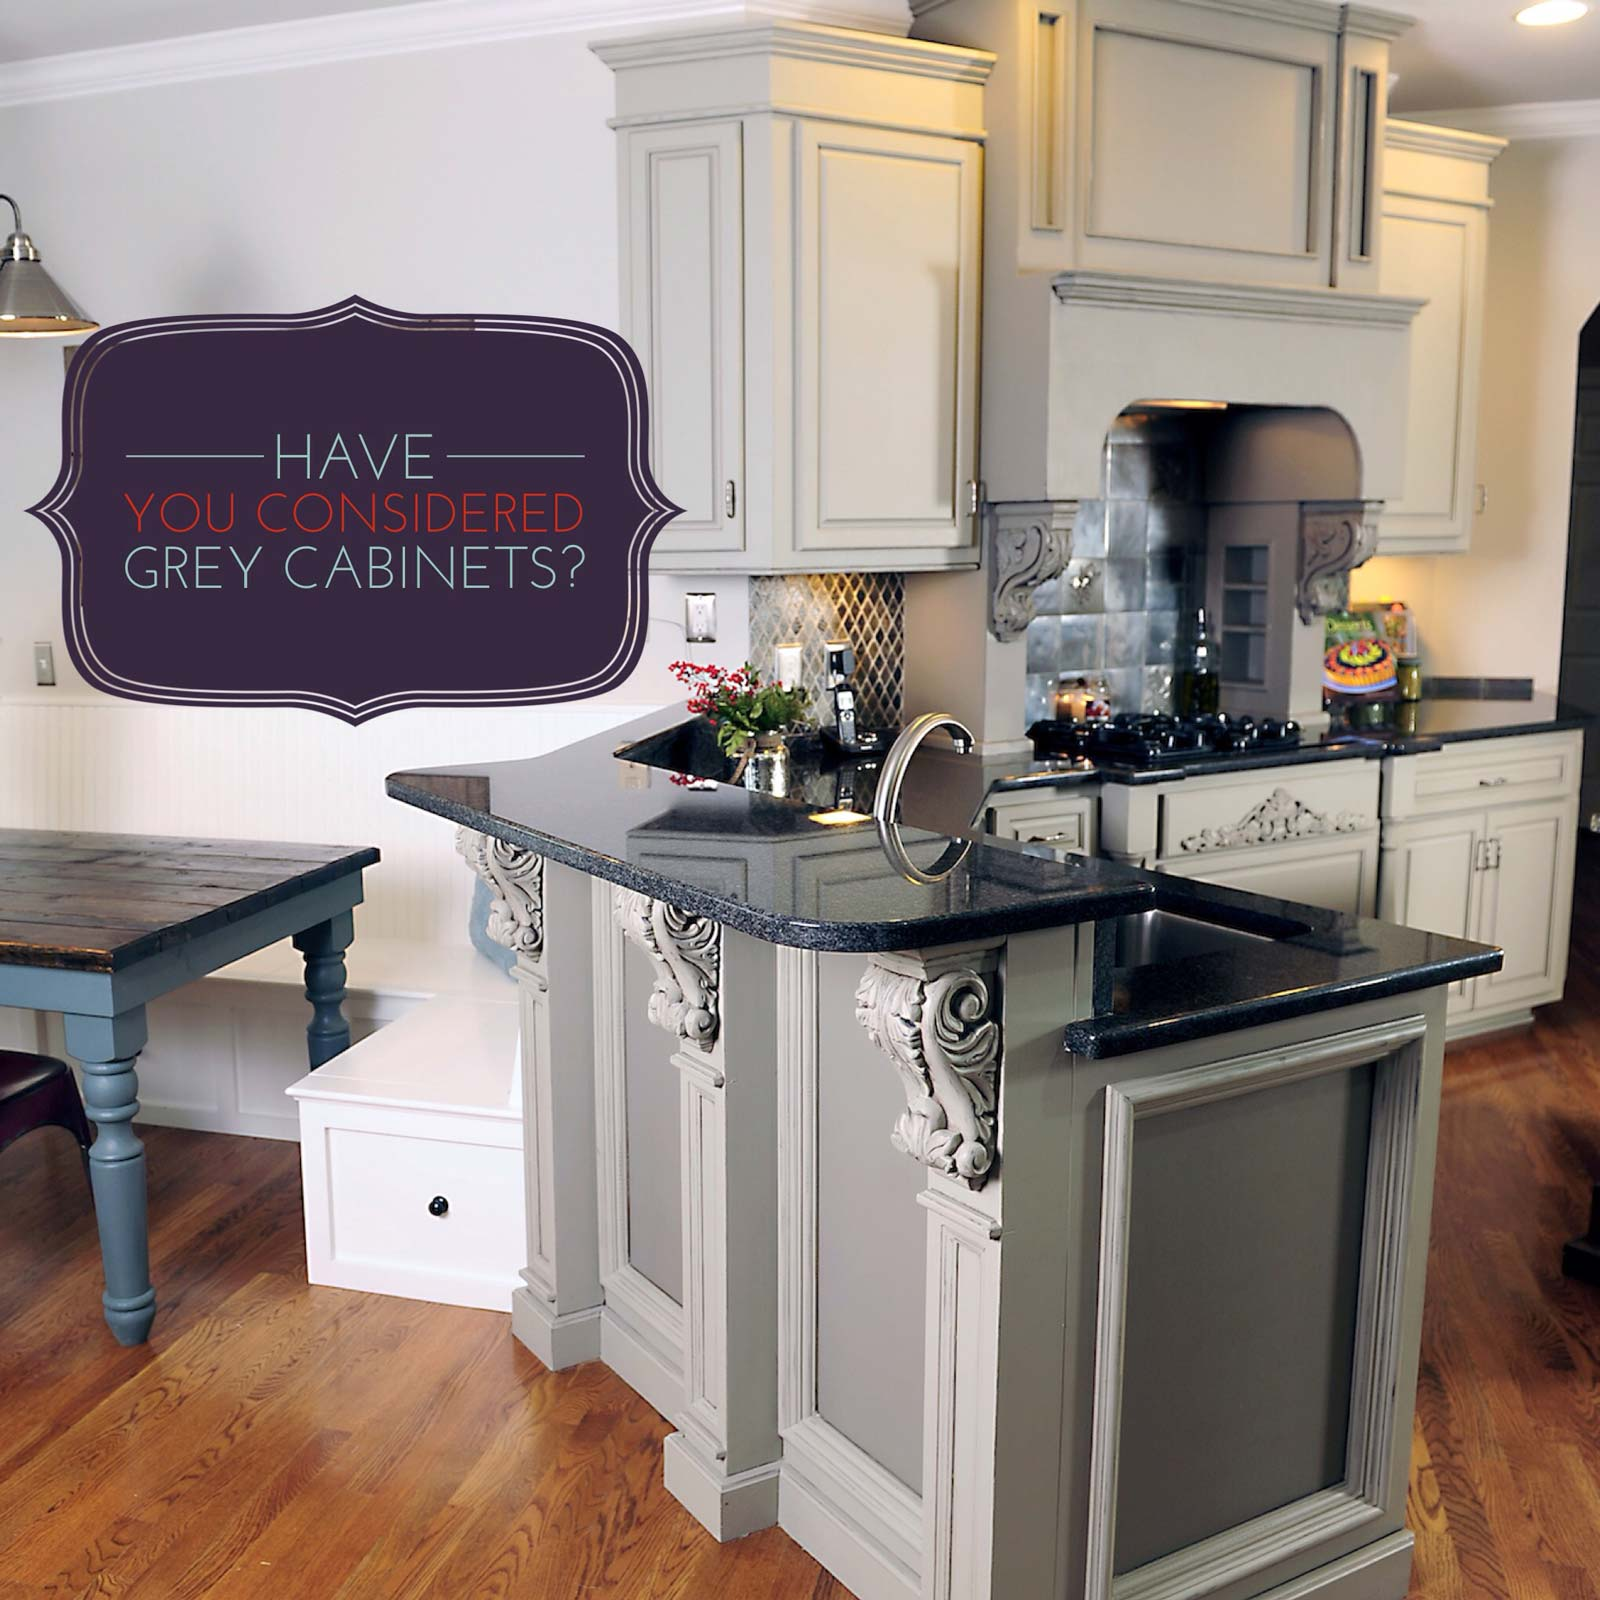 Kitchen In A Cabinet: Have You Considered Grey Kitchen Cabinets?